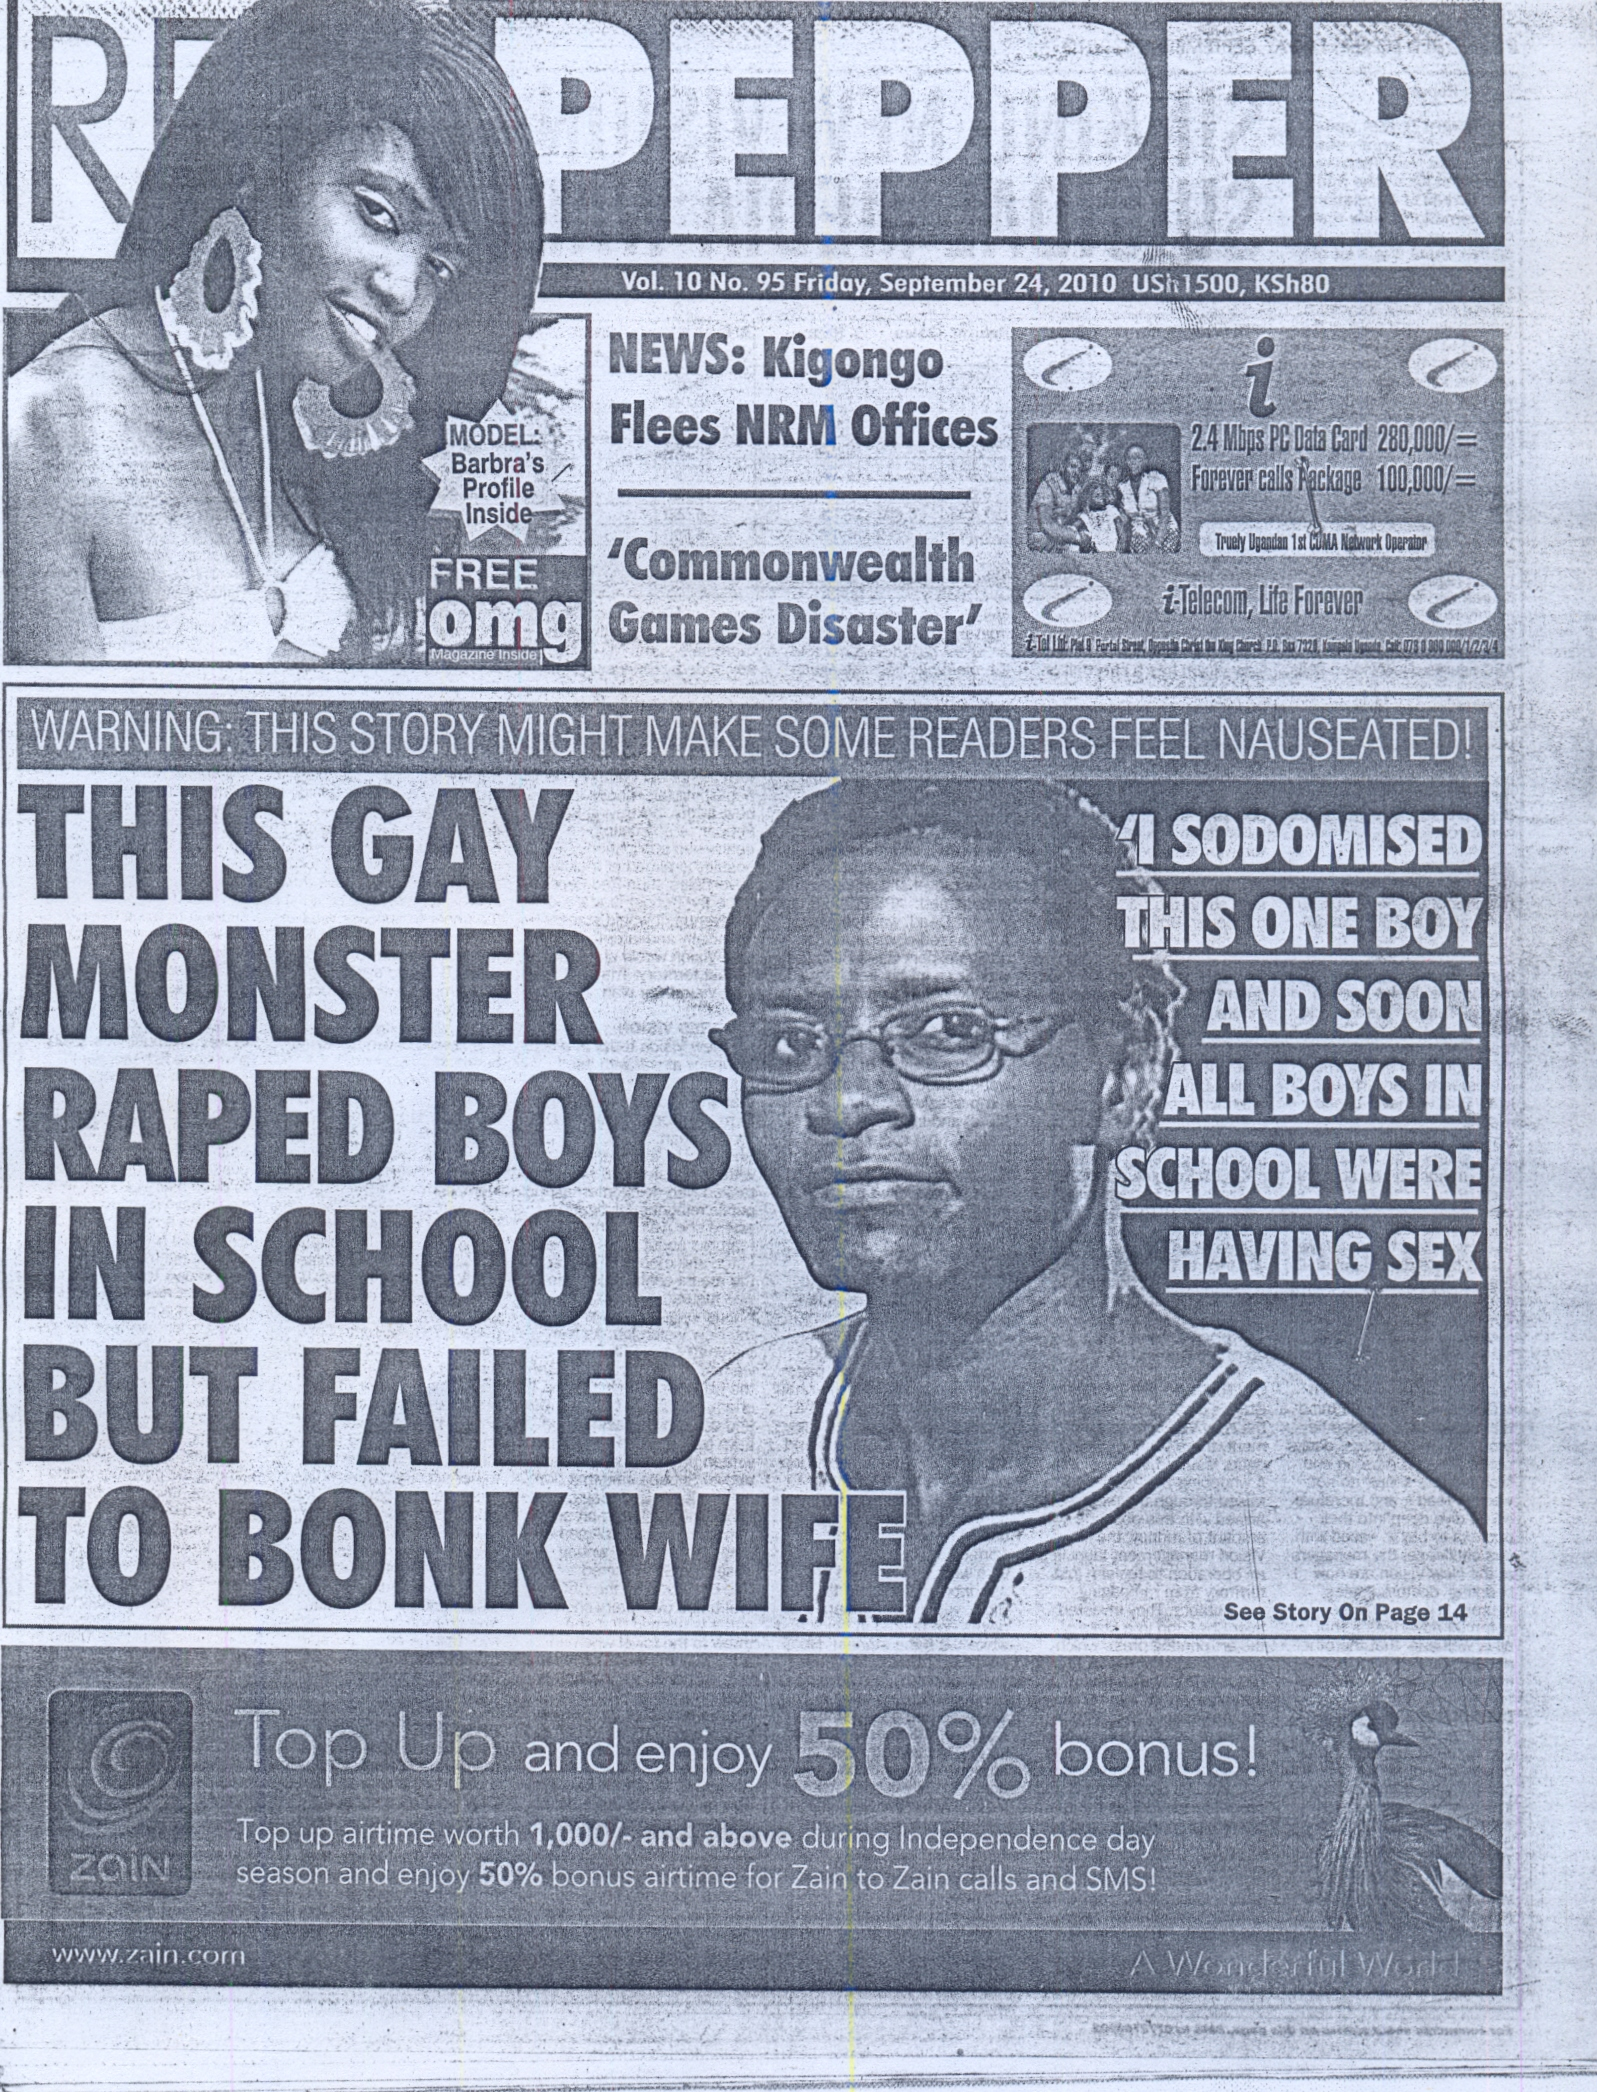 redpepper article 1 Newspaper Seeks Revenge On Ugandan LGBT Hero Moses Mworeko After He Appears In TWO Video